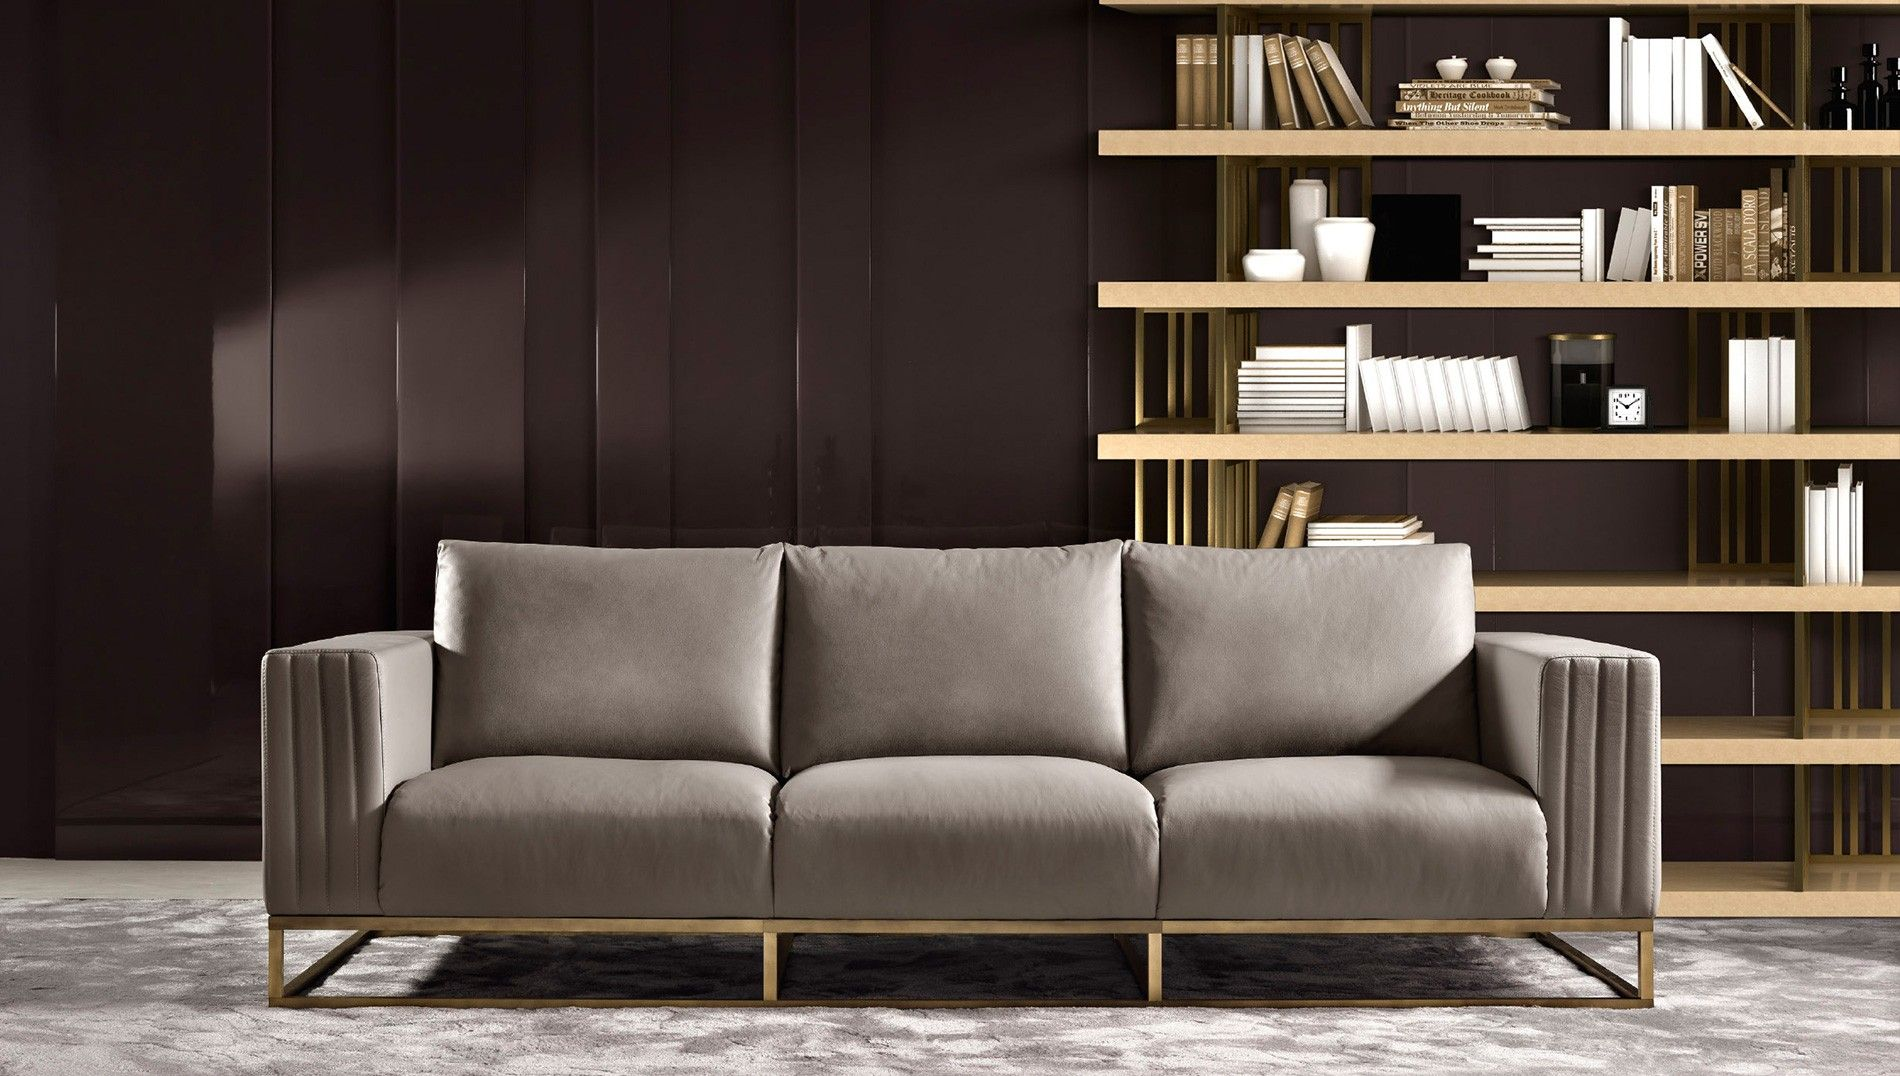 Shop Signorini Coco Martin Sofa At Luxdeco Discover Luxury Collections From The World S Leading Lighting Brands Fr Luxury Sofa Sofa Design Furniture Design